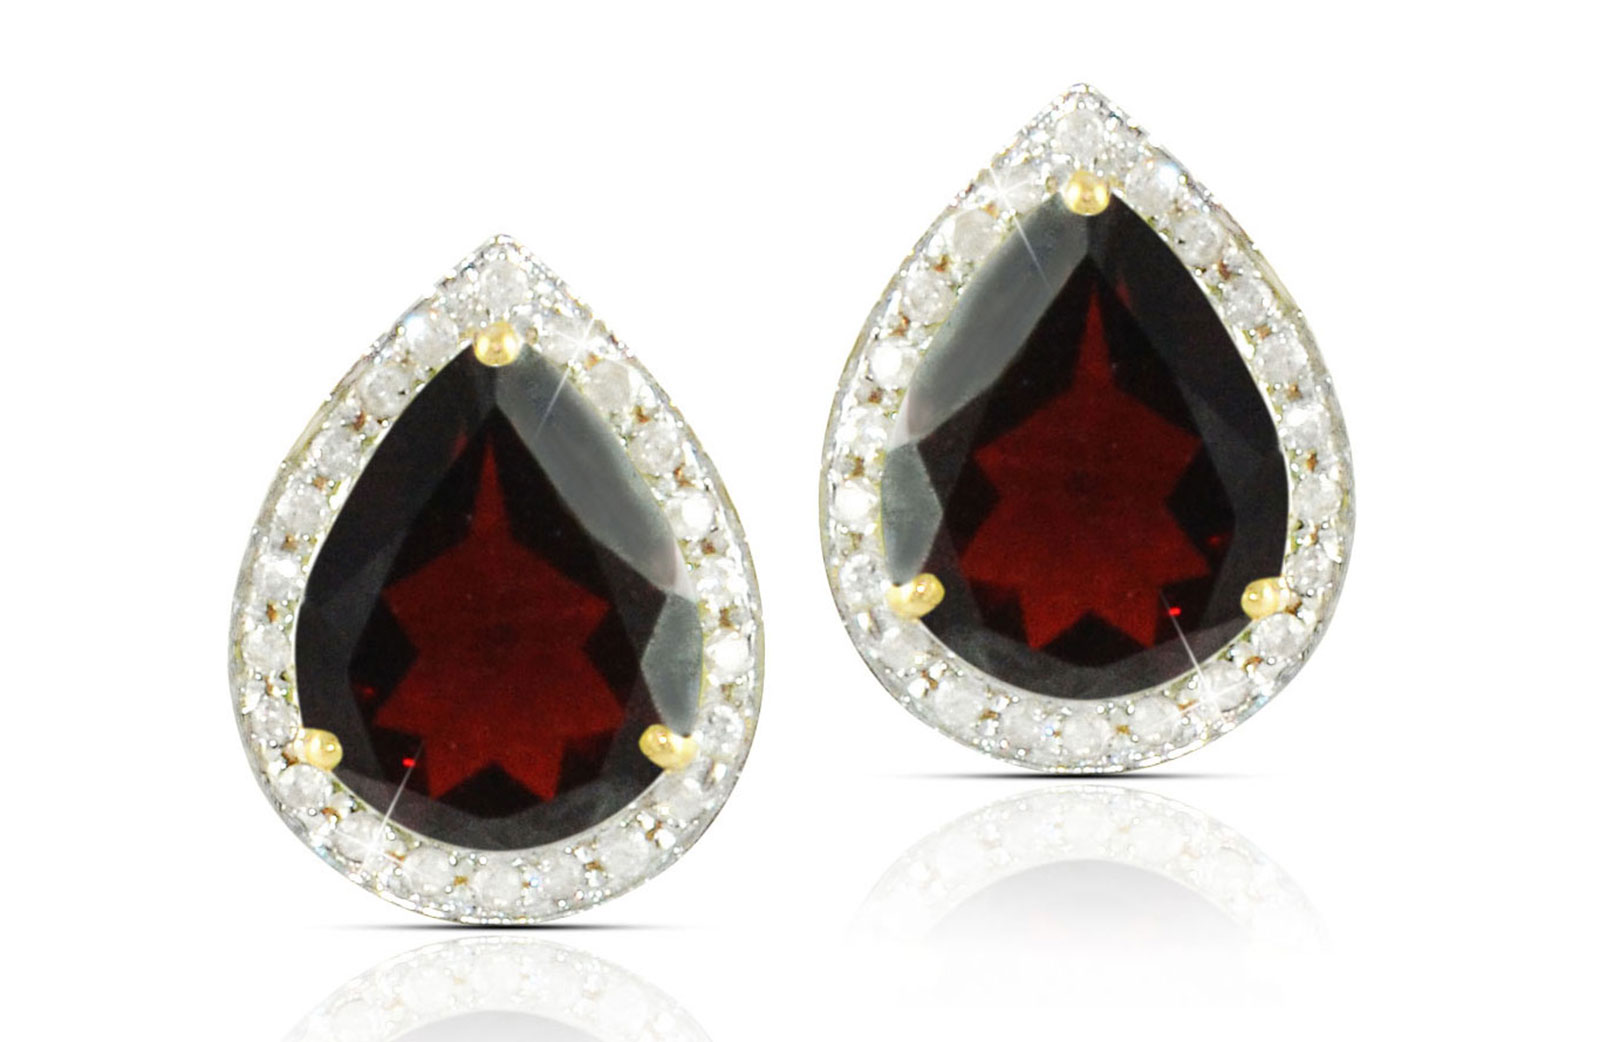 Vera Perla  18k  Gold 10mm Genuine Drop  Cut Garnet 0.24Ct Genuine Diamonds earrings